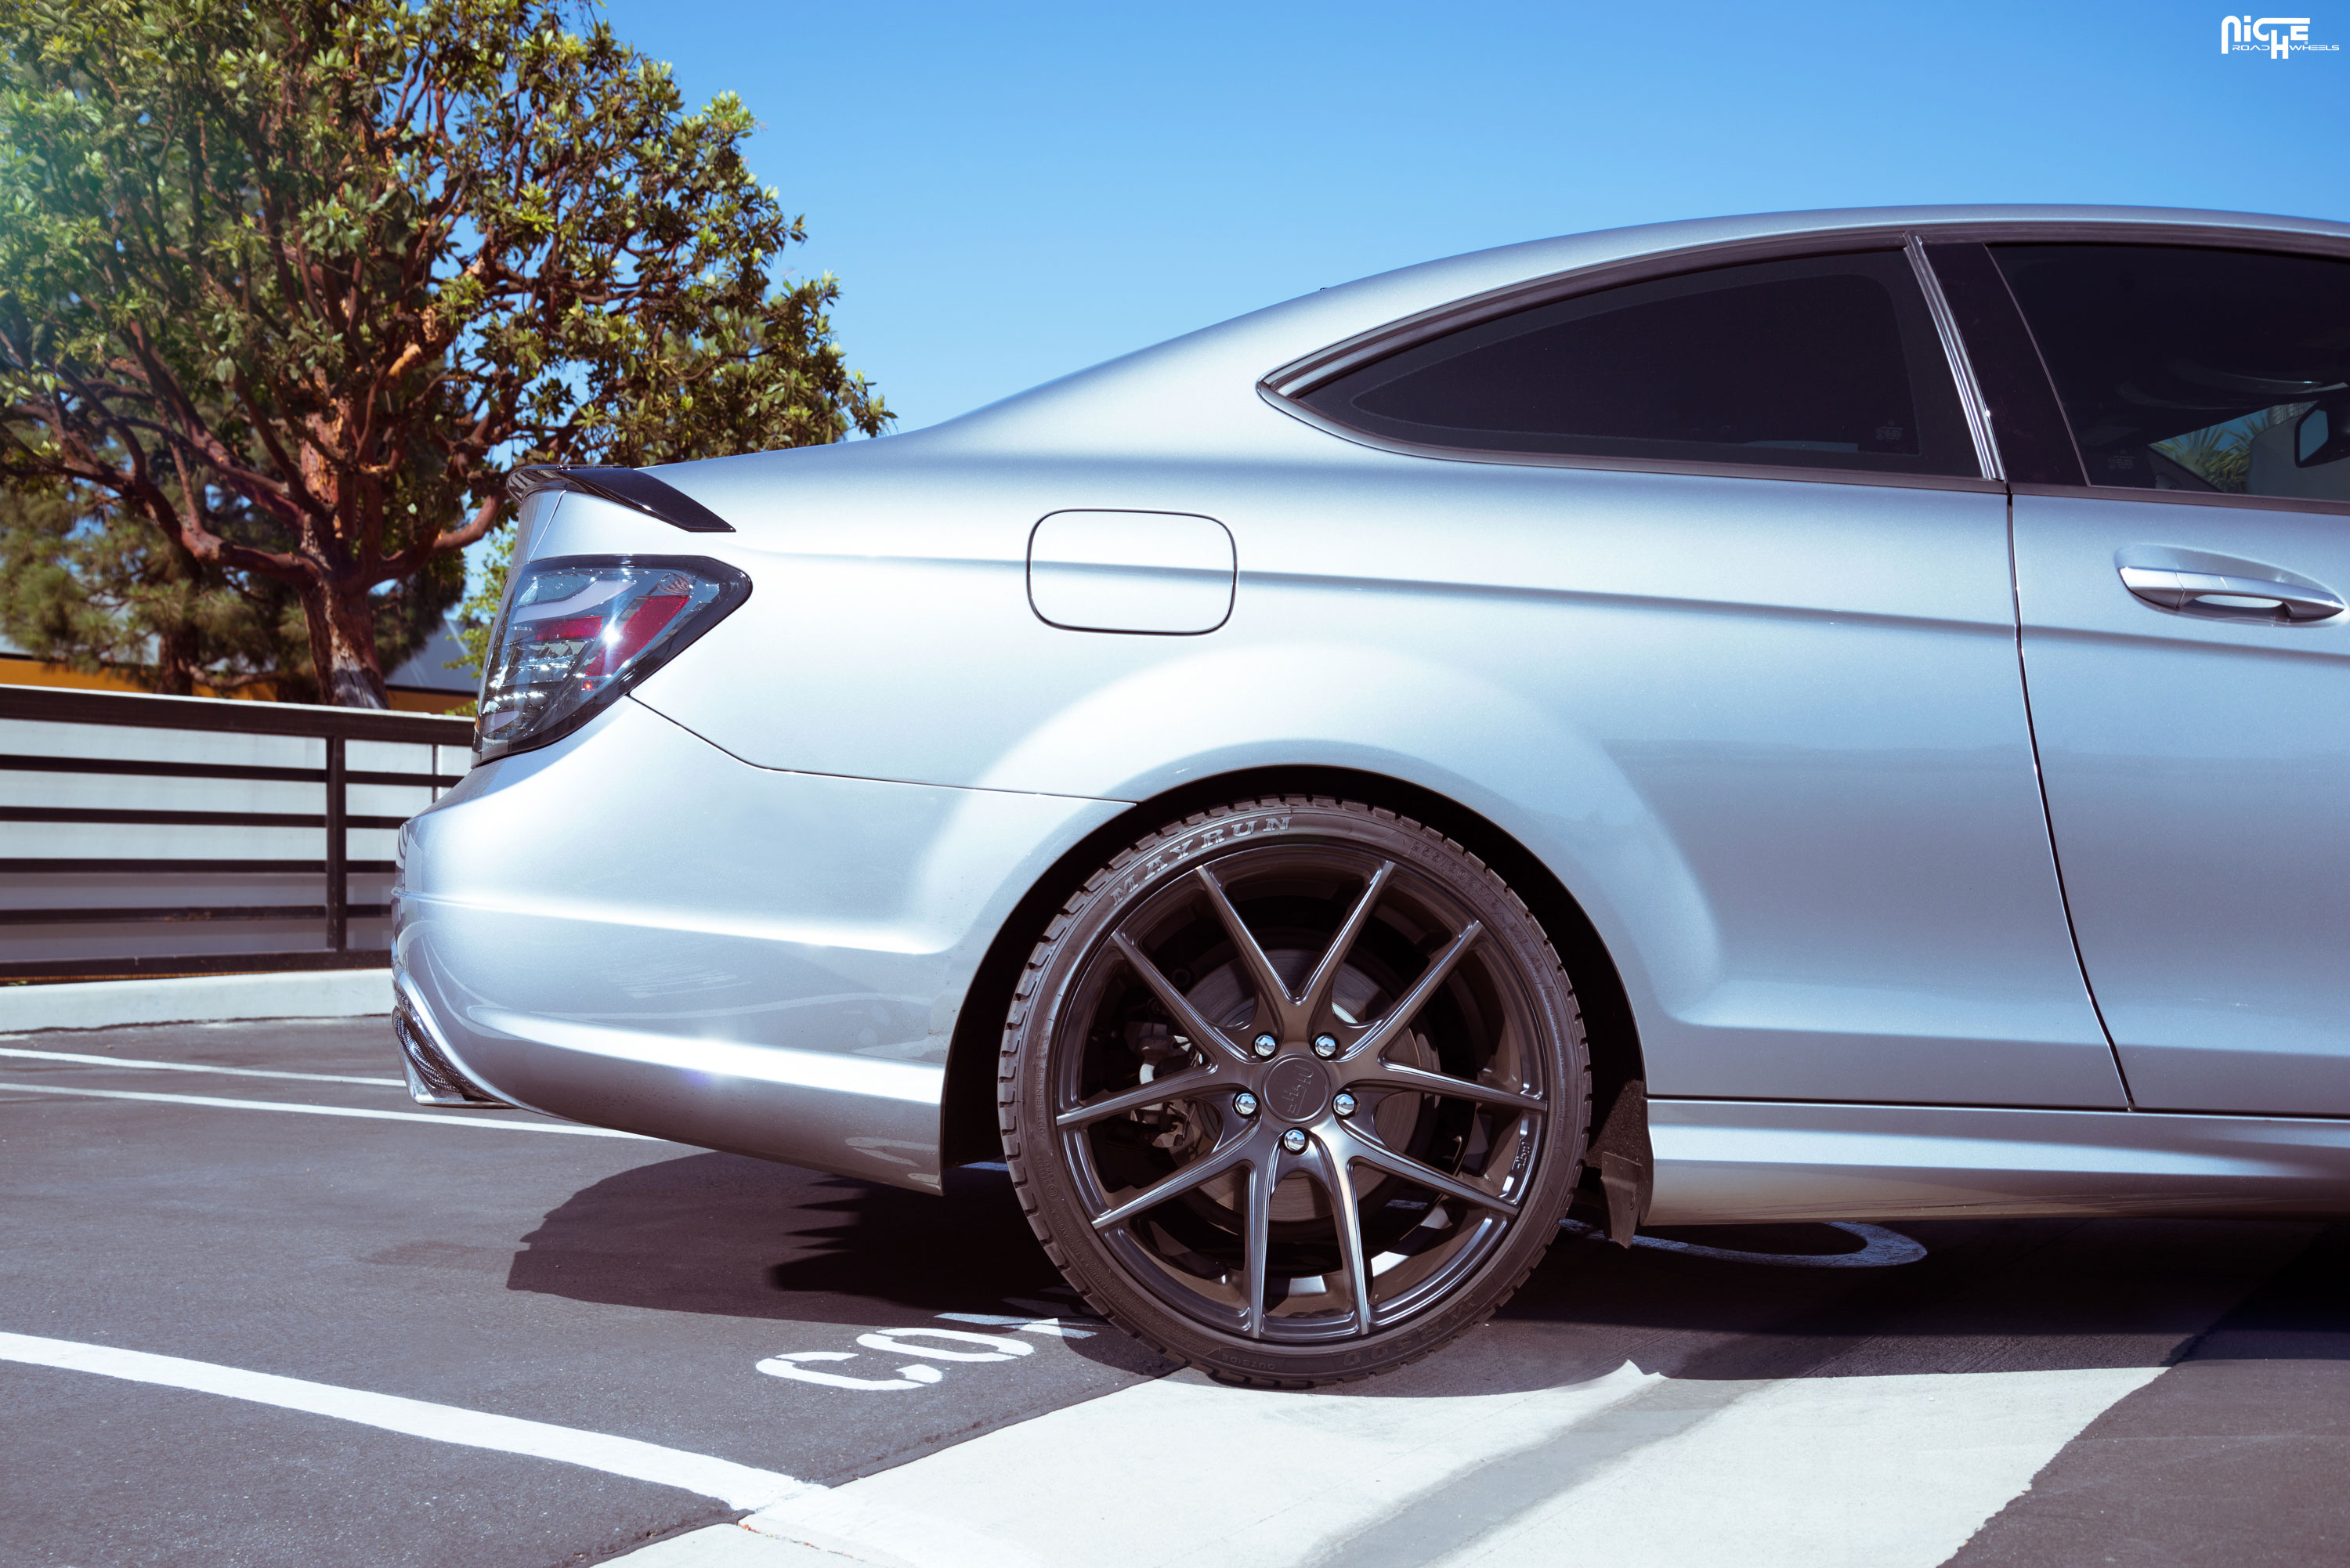 Mercedes benz c300 targa m130 gallery mht wheels inc for Mercedes benz wheel and tire protection